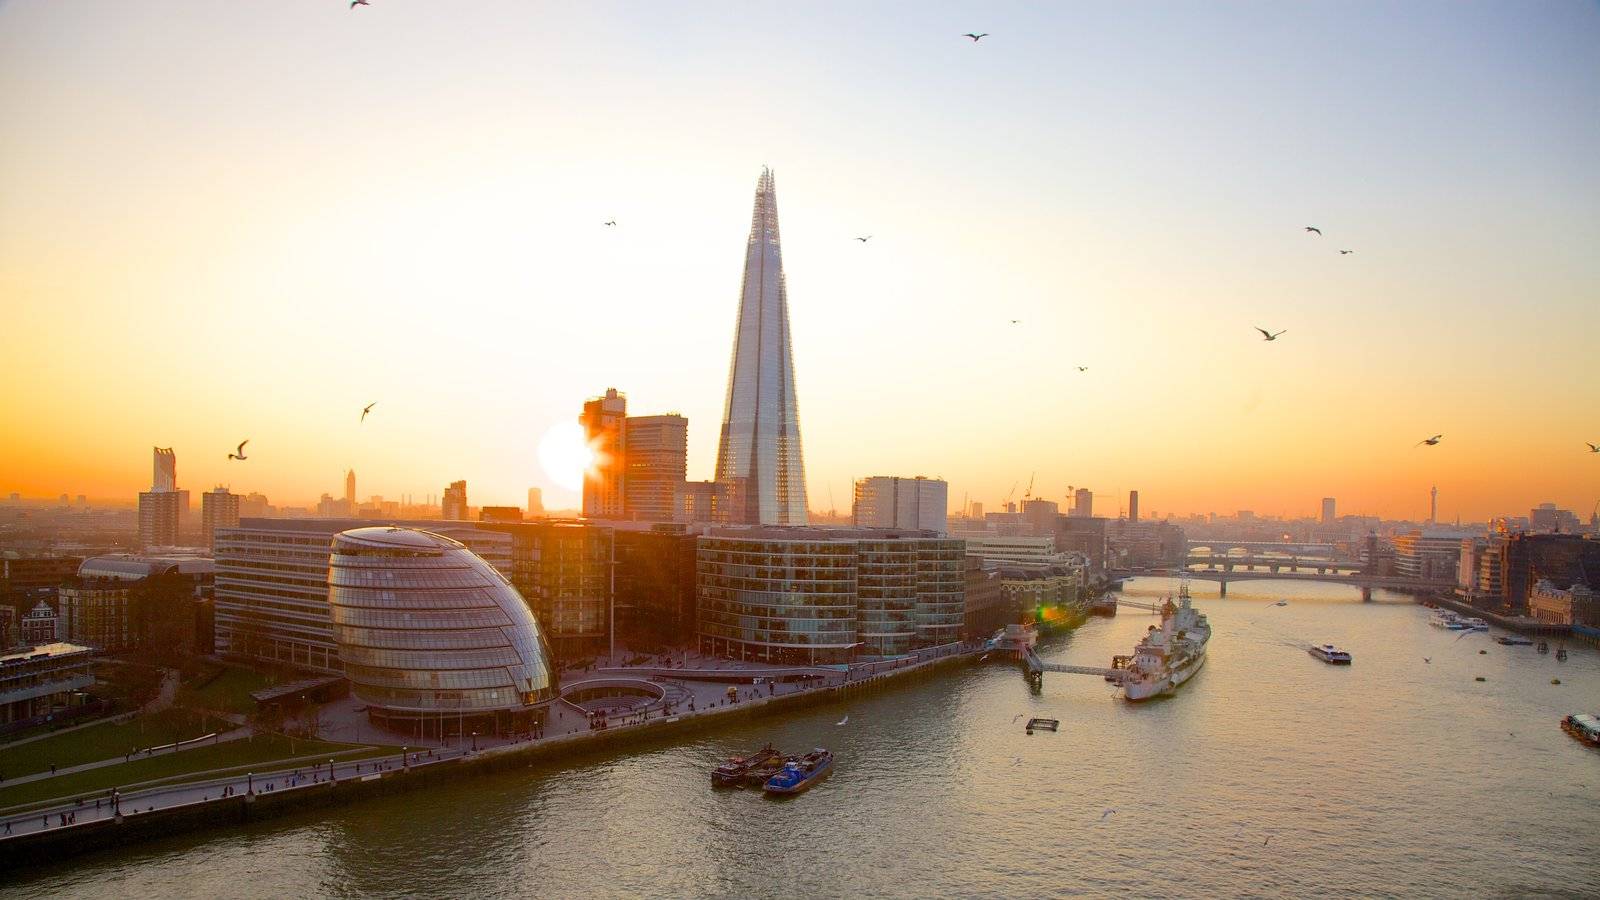 Tower Bridge which includes a sunset, a bay or harbor and modern architecture